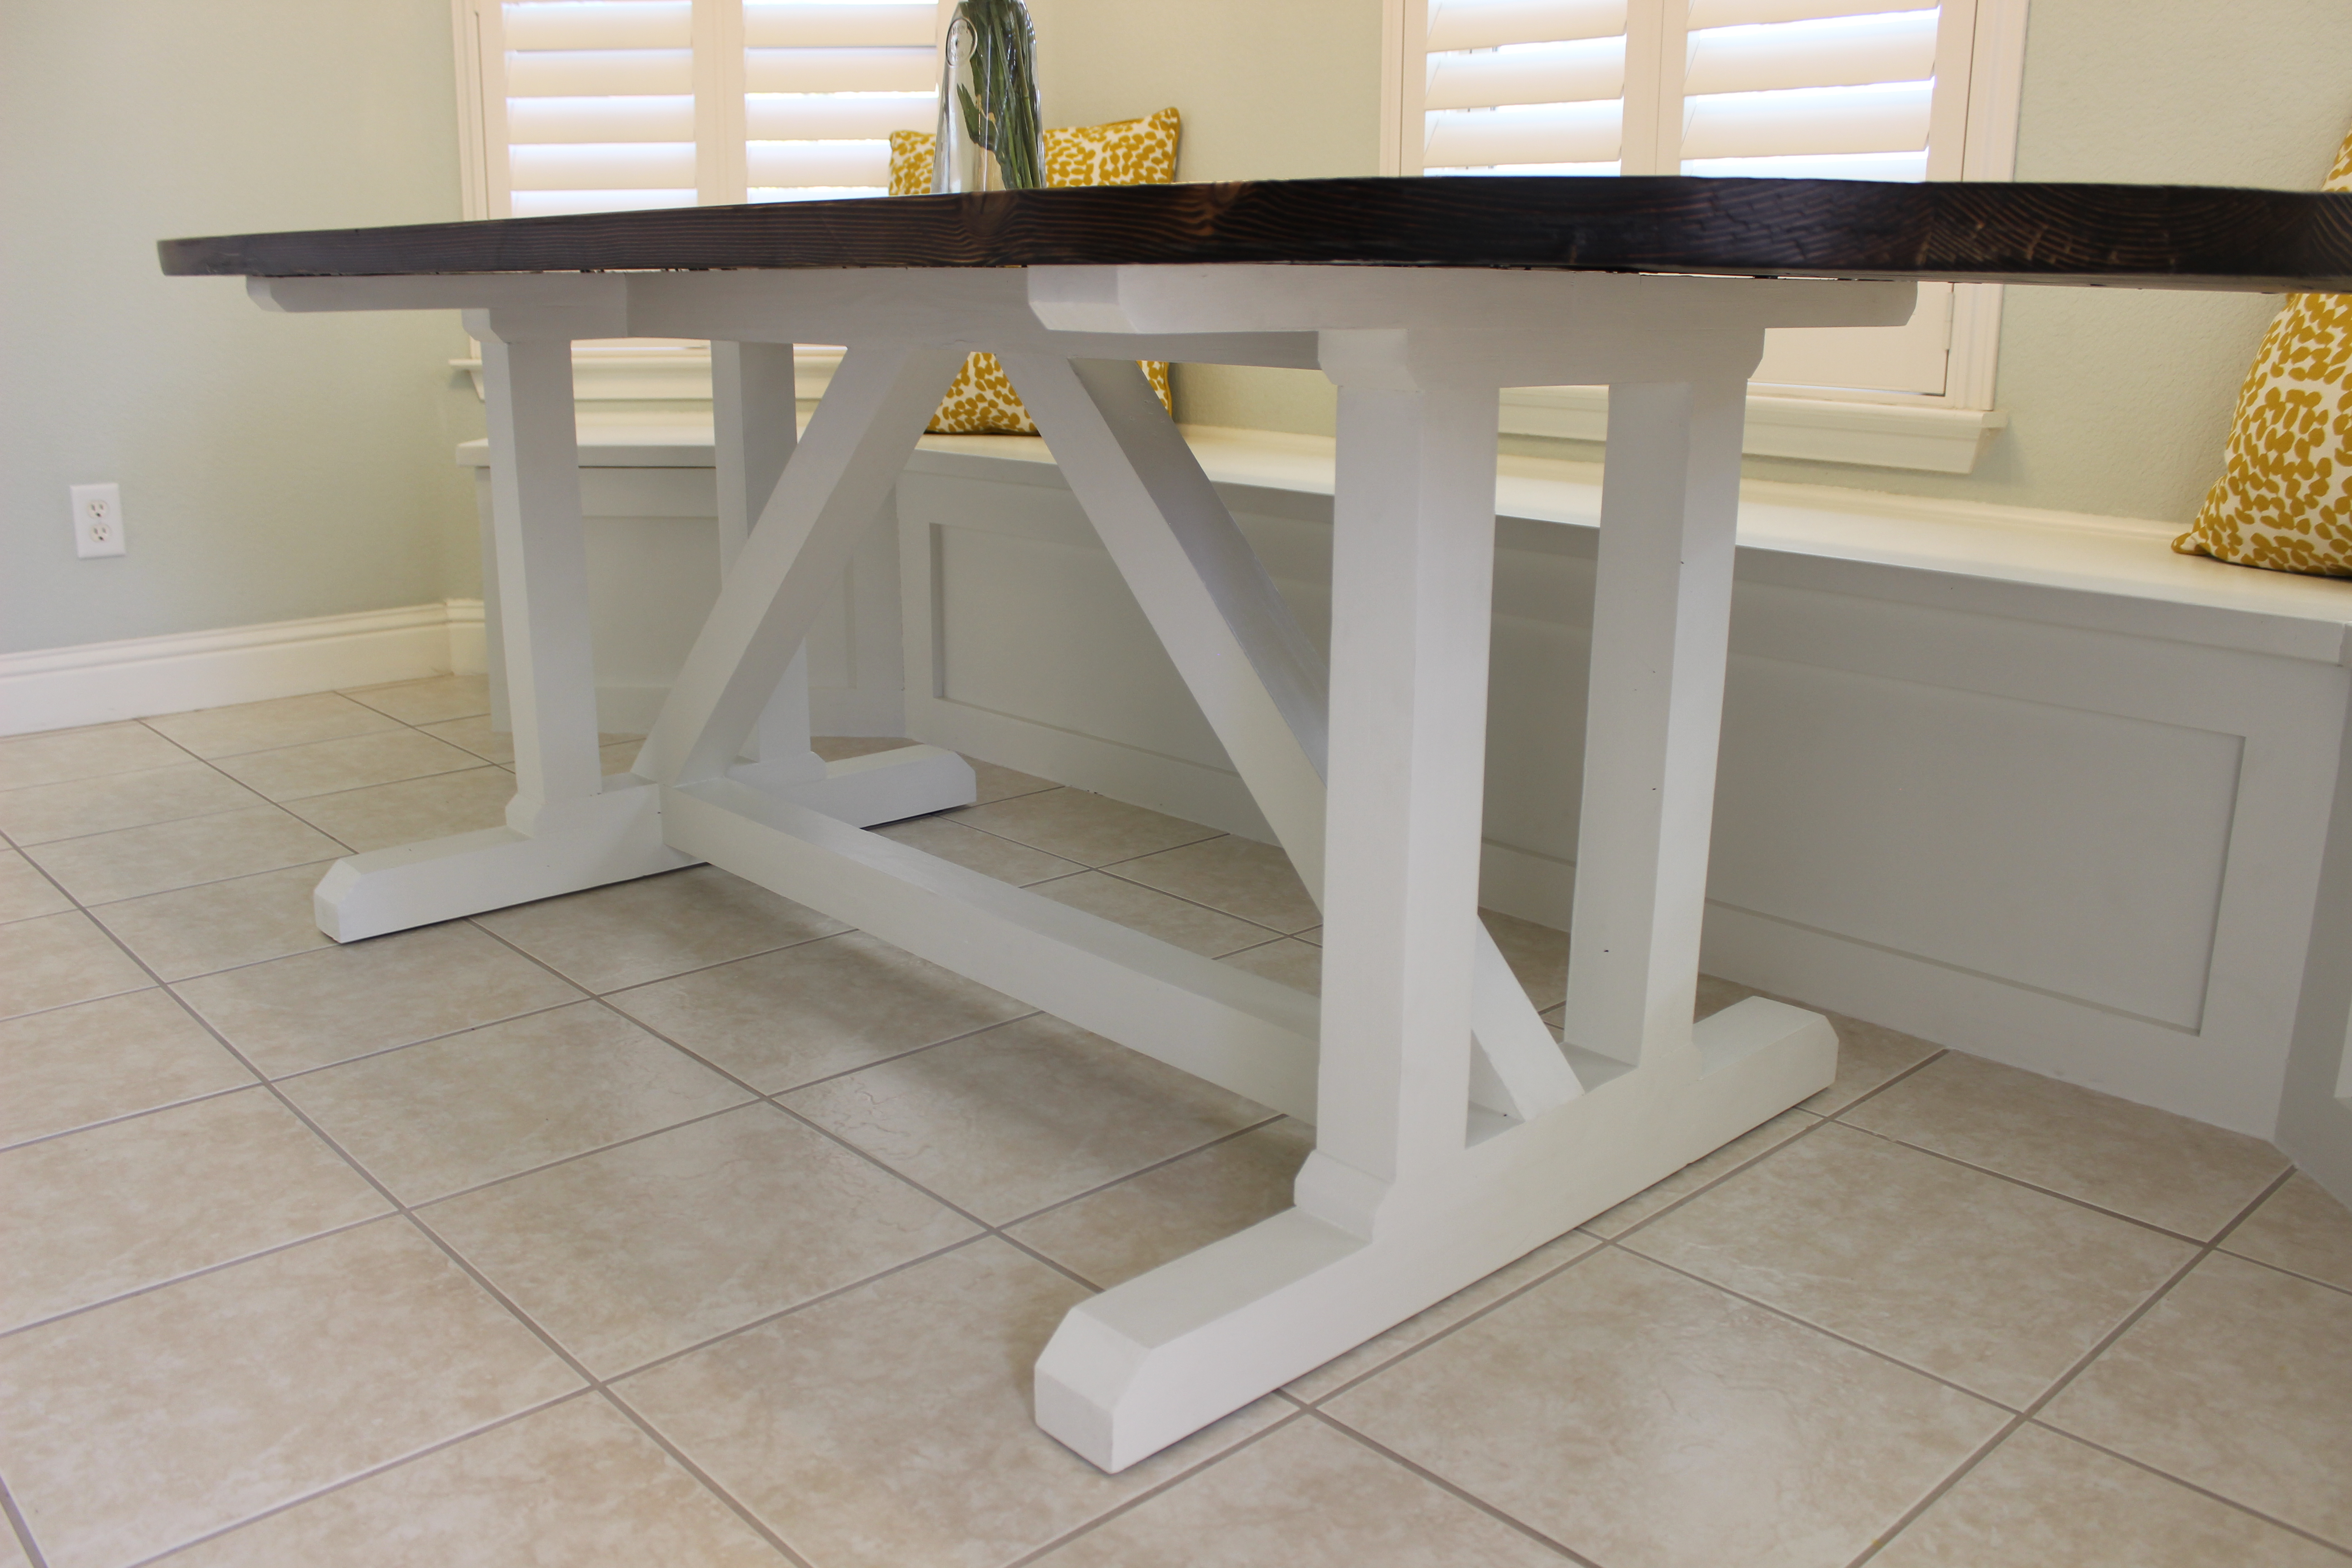 angled view of finished racetrack-shaped dining table